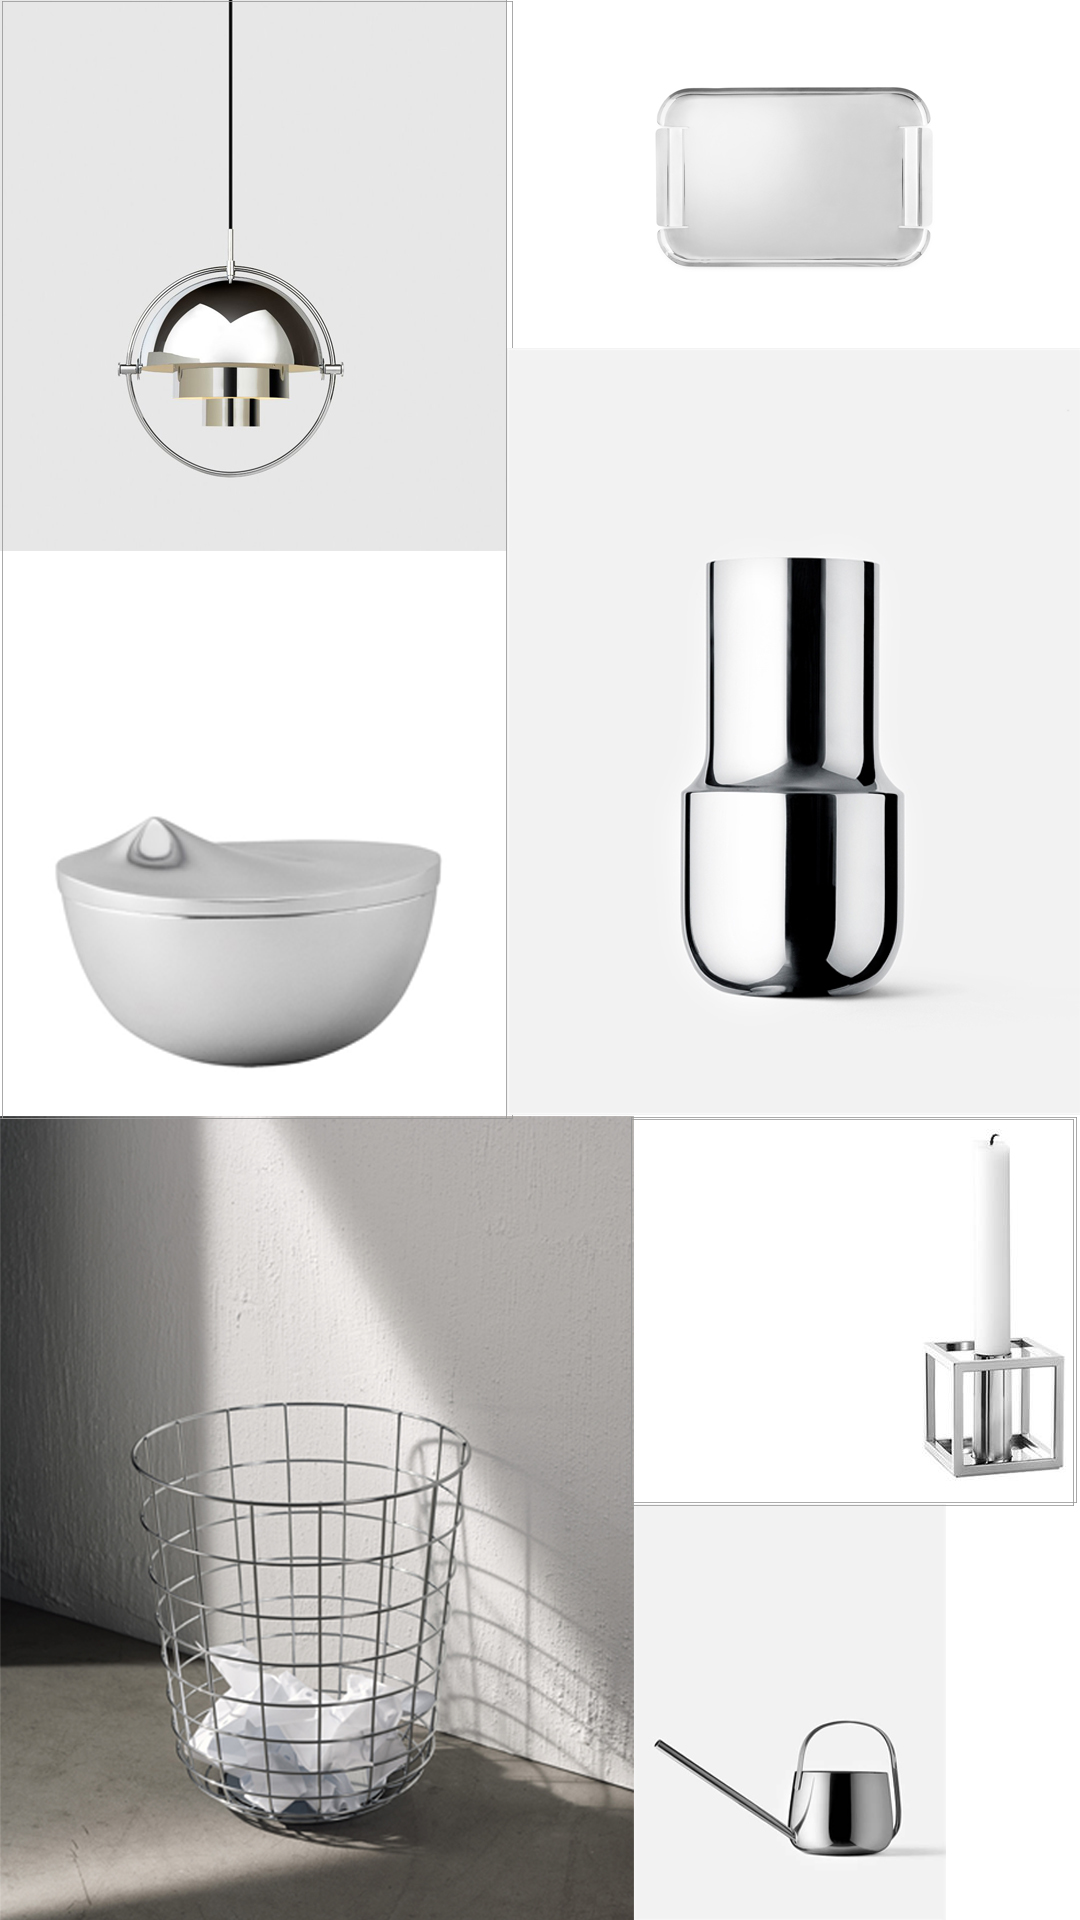 Silver and chrome Scandinavian design accessories